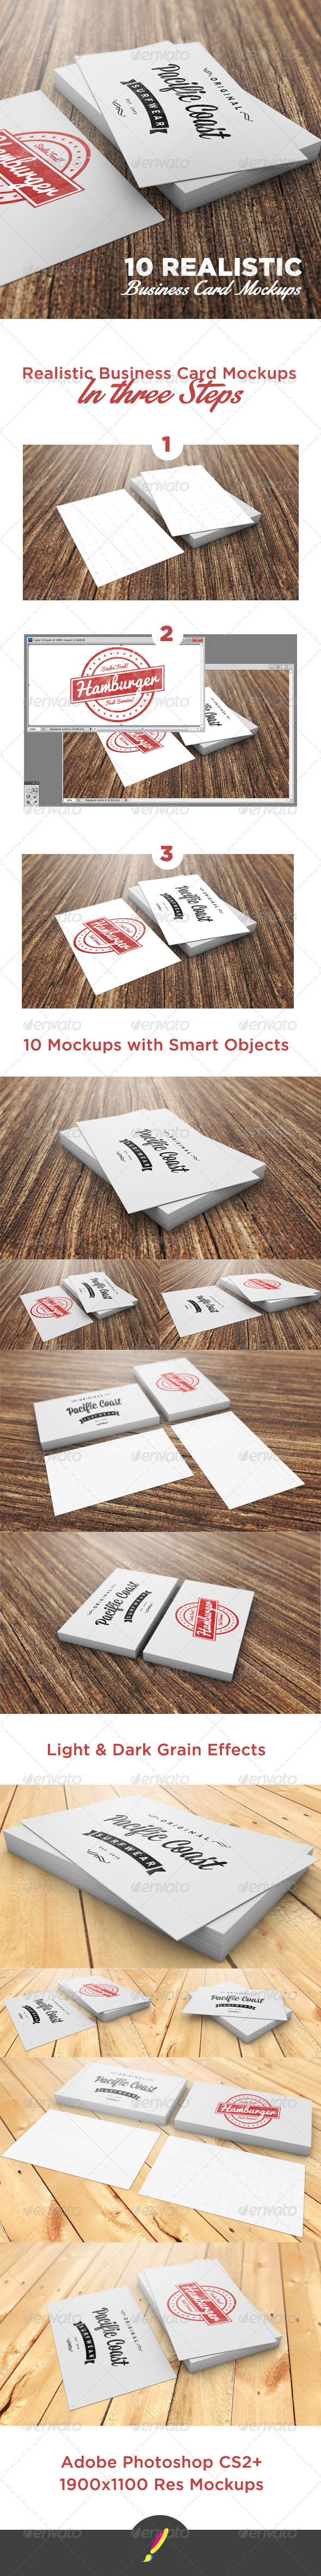 10 Photorealistic Business Card Mockups